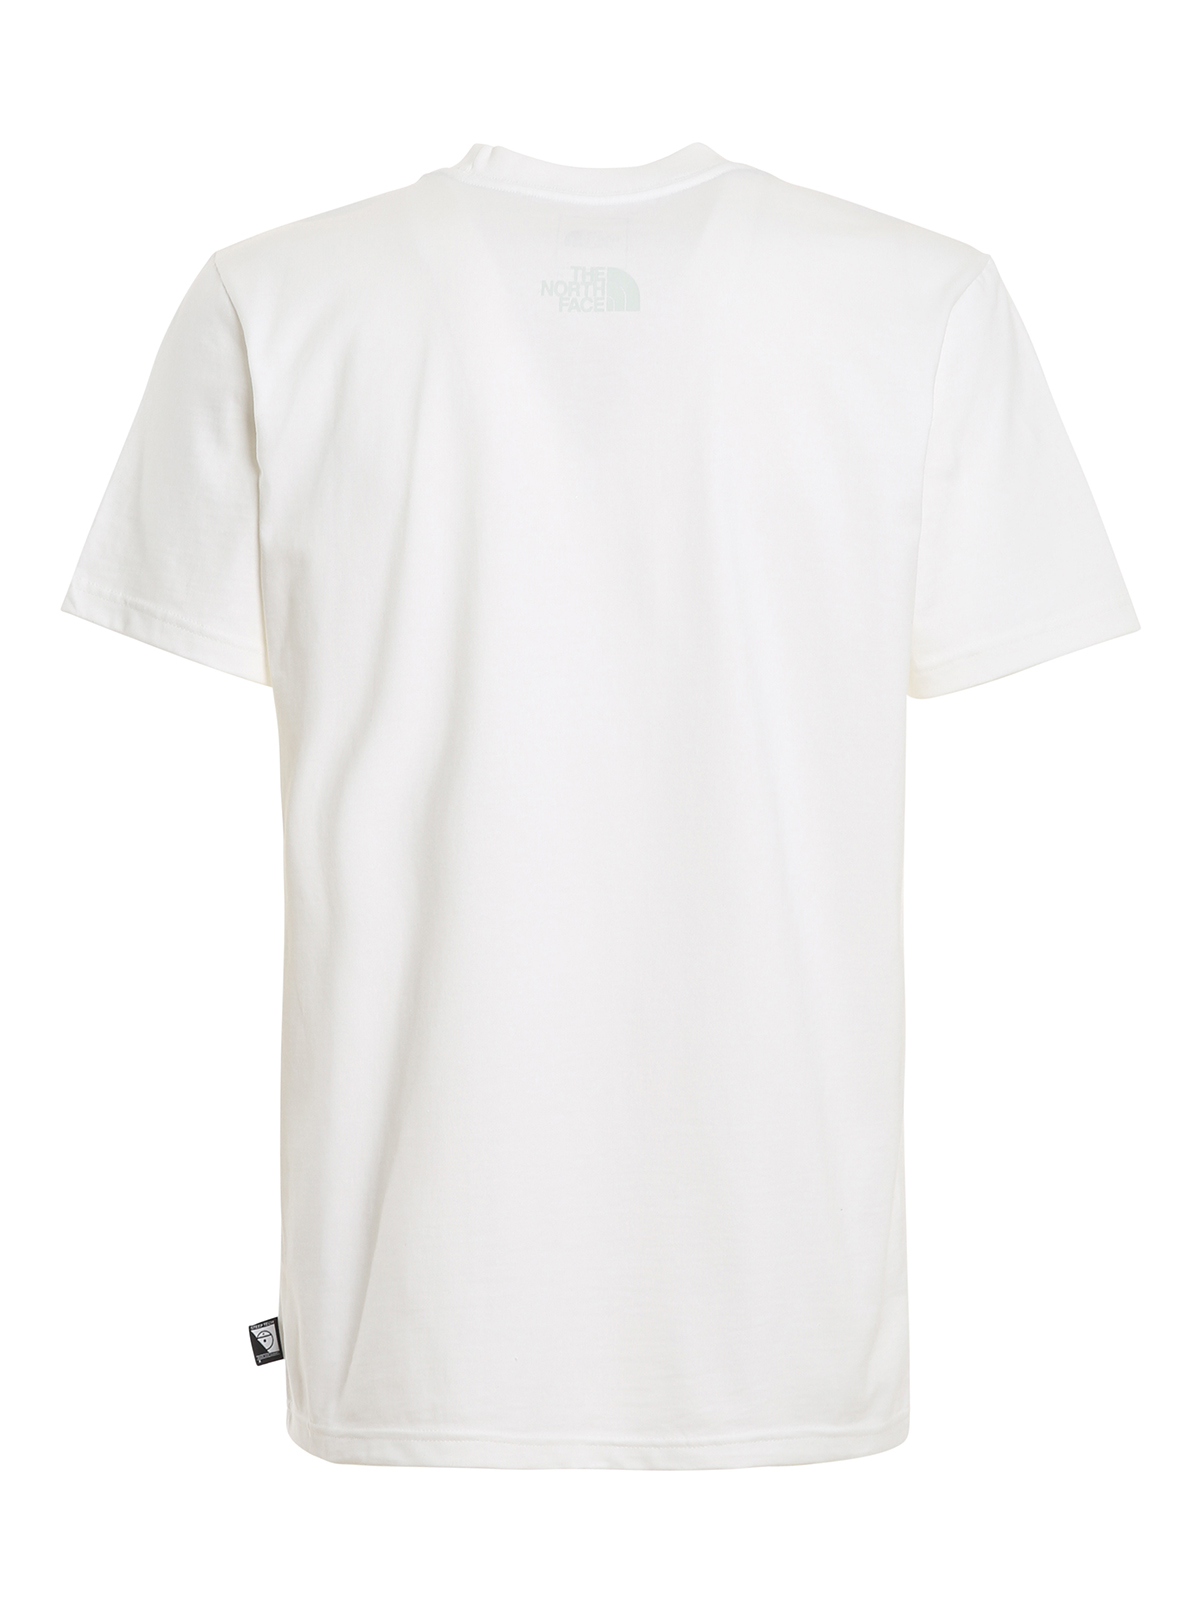 Picture of The North Face | Stp Tch Lt Ss Top Tnf